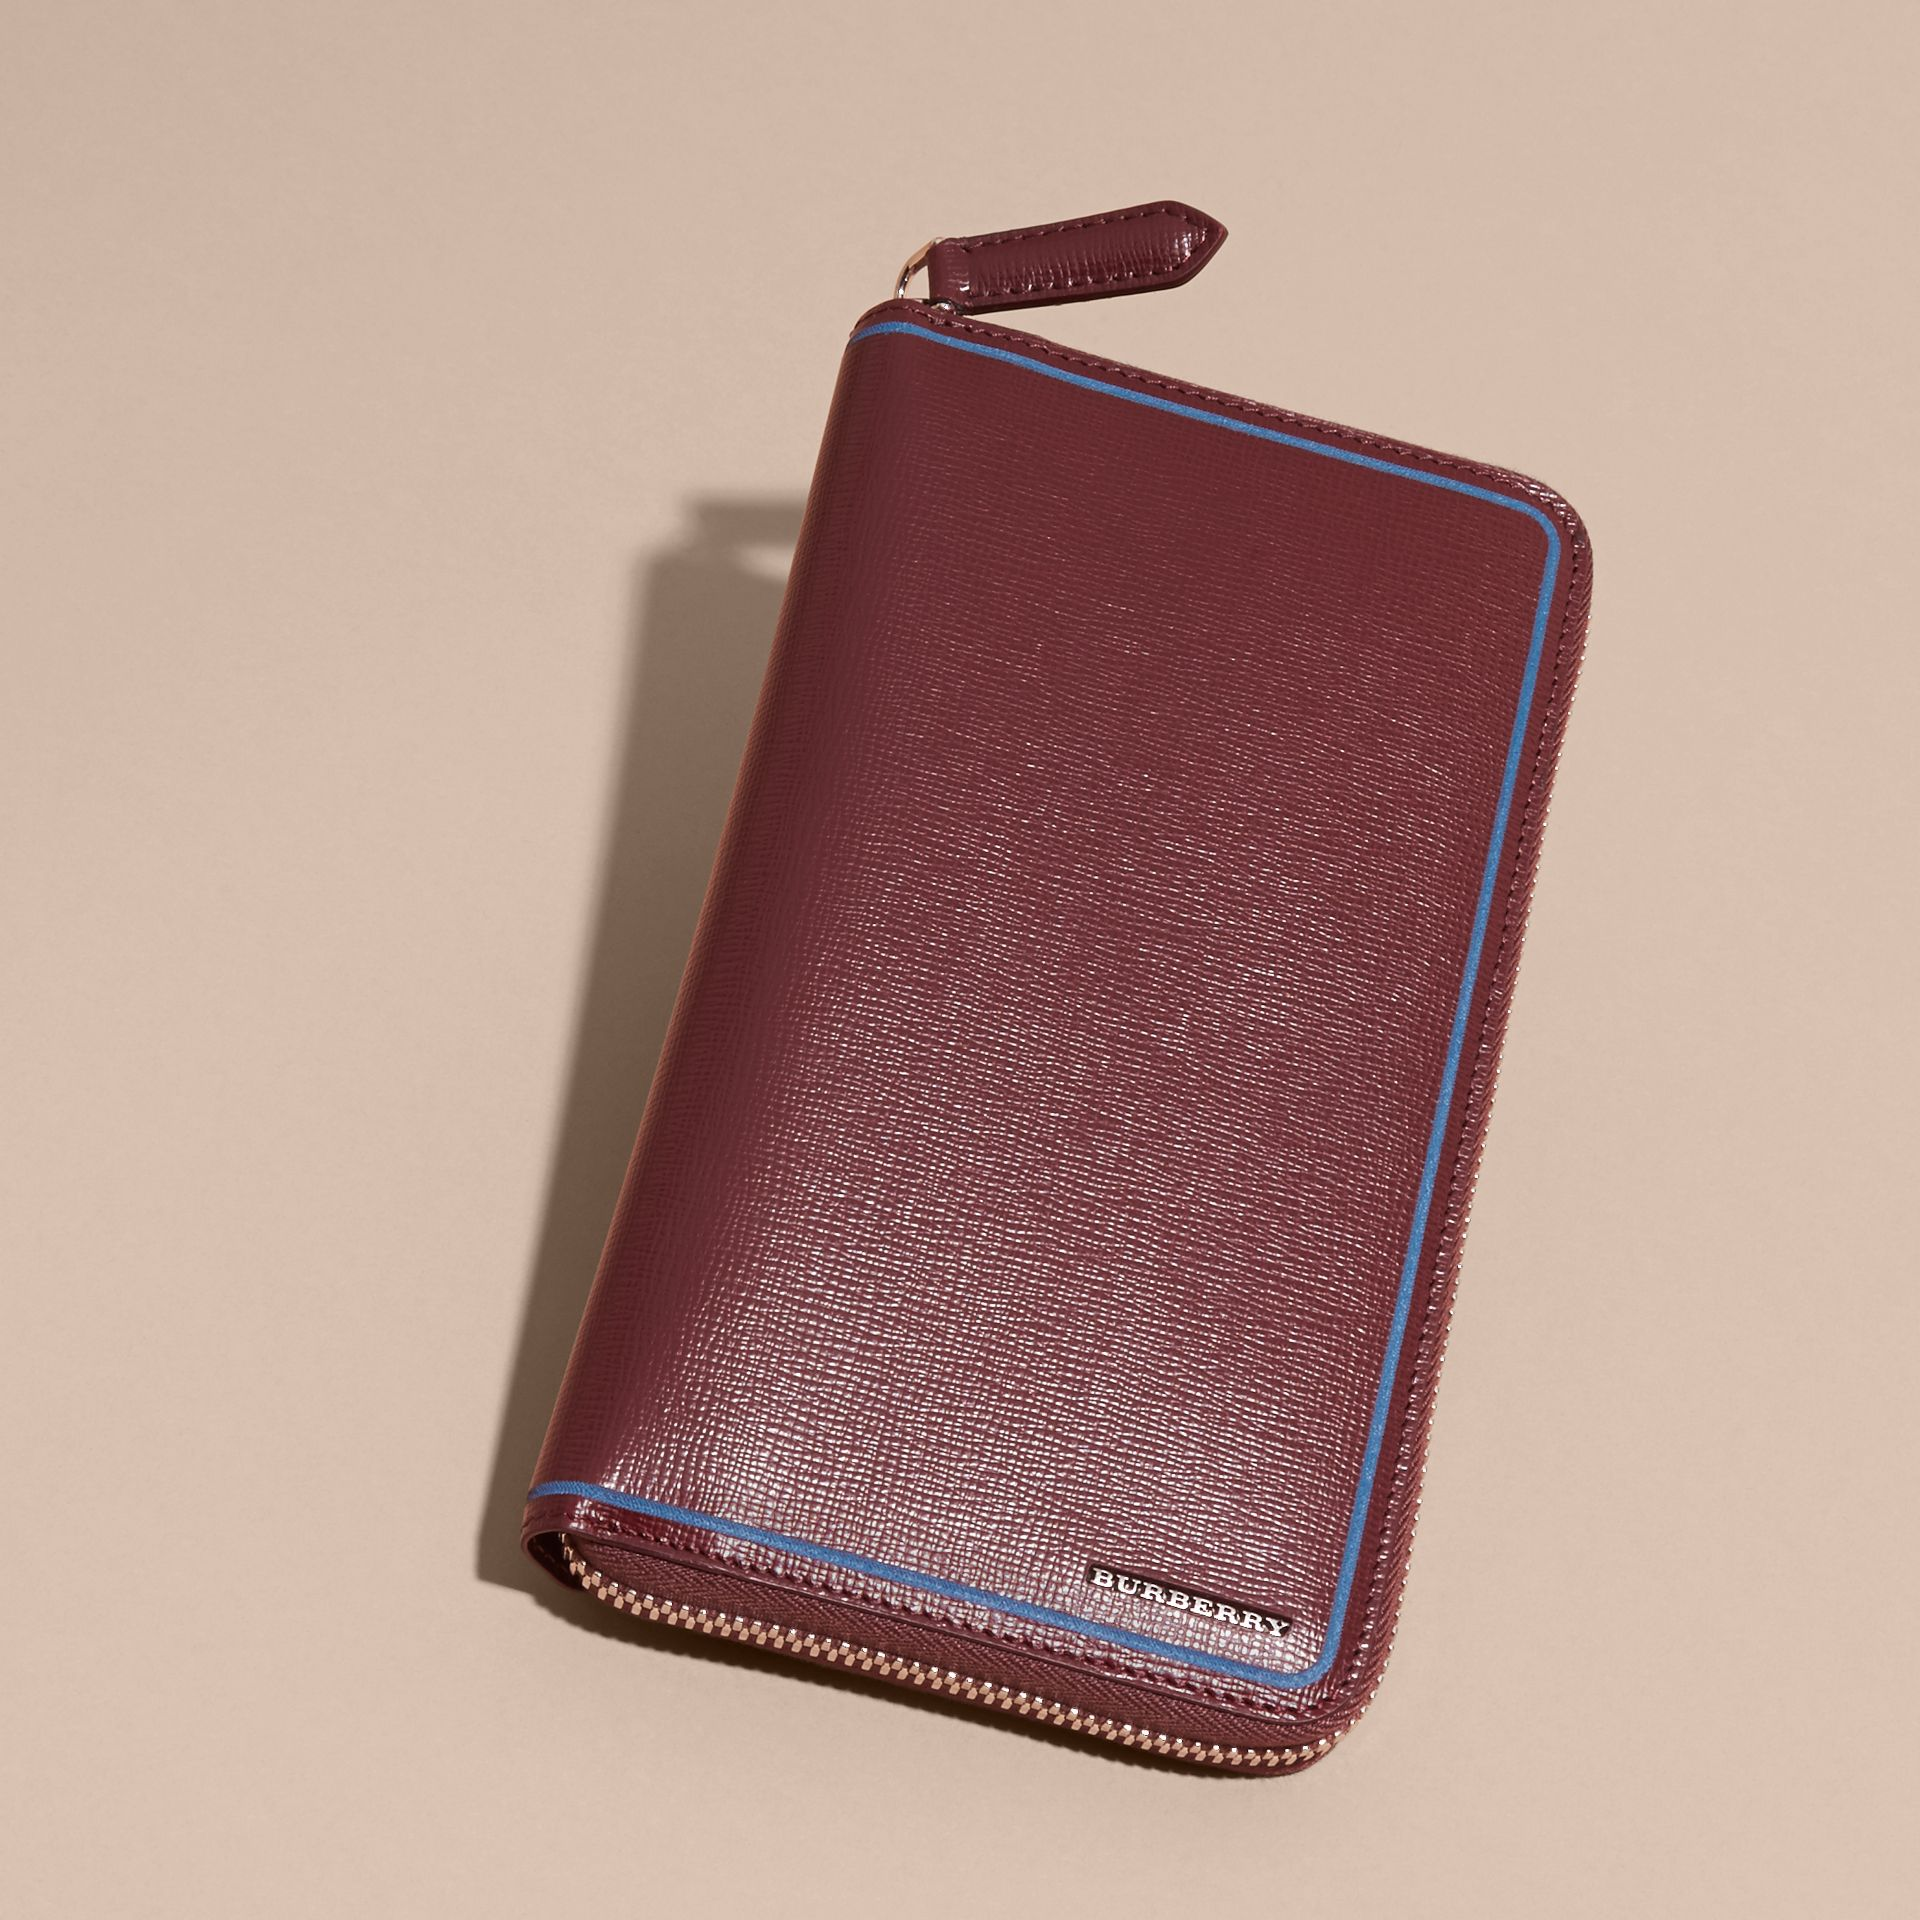 Border Detail London Leather Ziparound Wallet Burgundy Red - gallery image 5